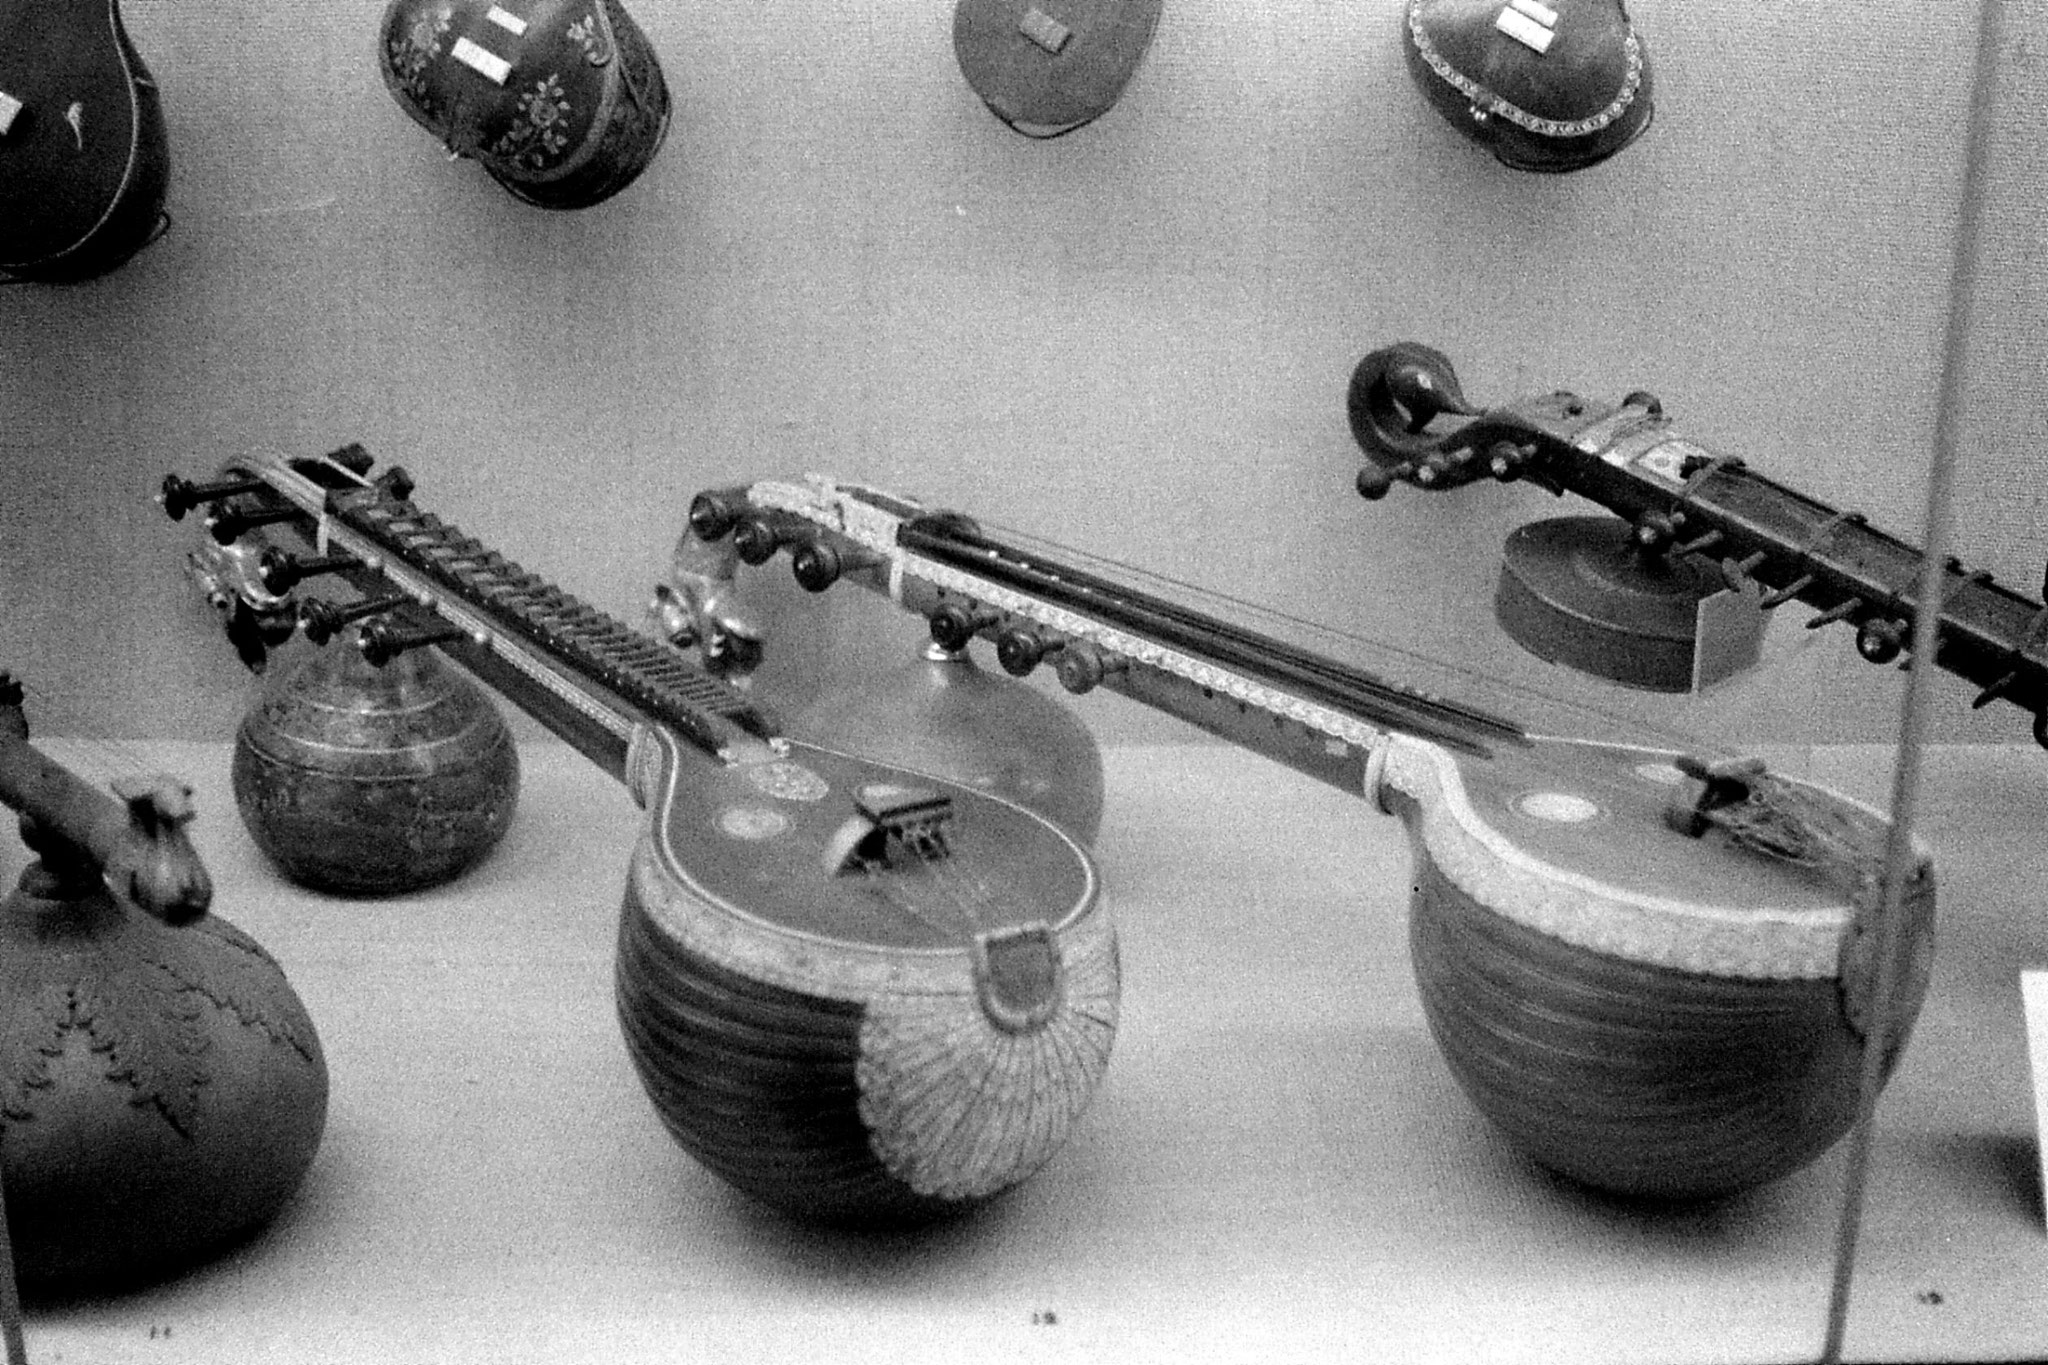 26/11/1989: 28: National Museum, instruments